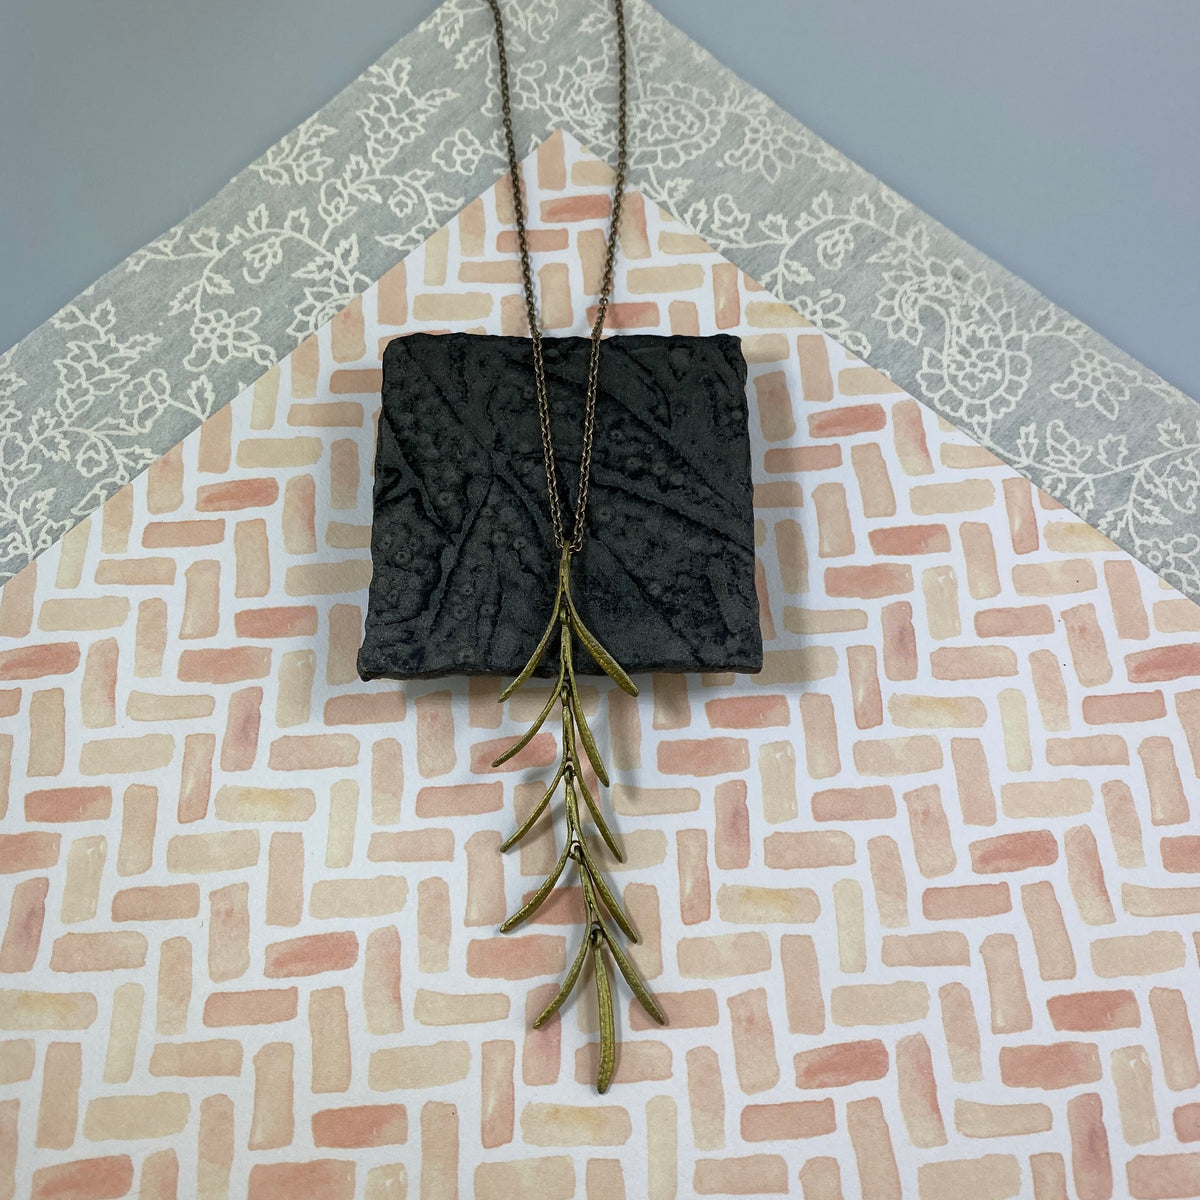 Rosemary Pendant - Heart of the Home PA